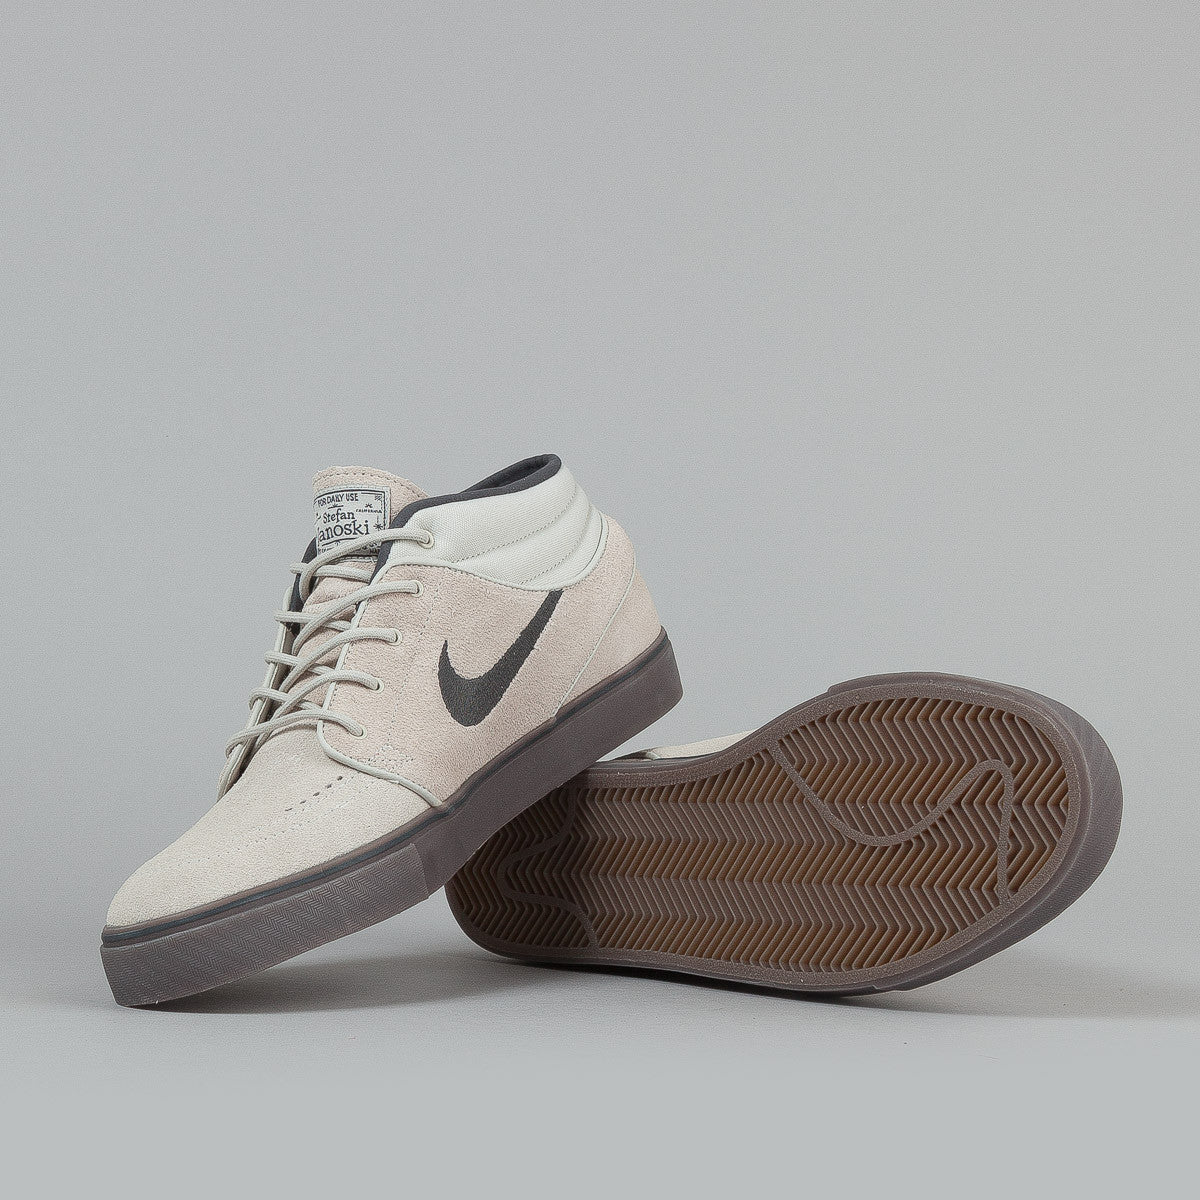 Nike SB Stefan Janoski Mid Shoes - Light Bone / Anthracite / Gum Dark Brown